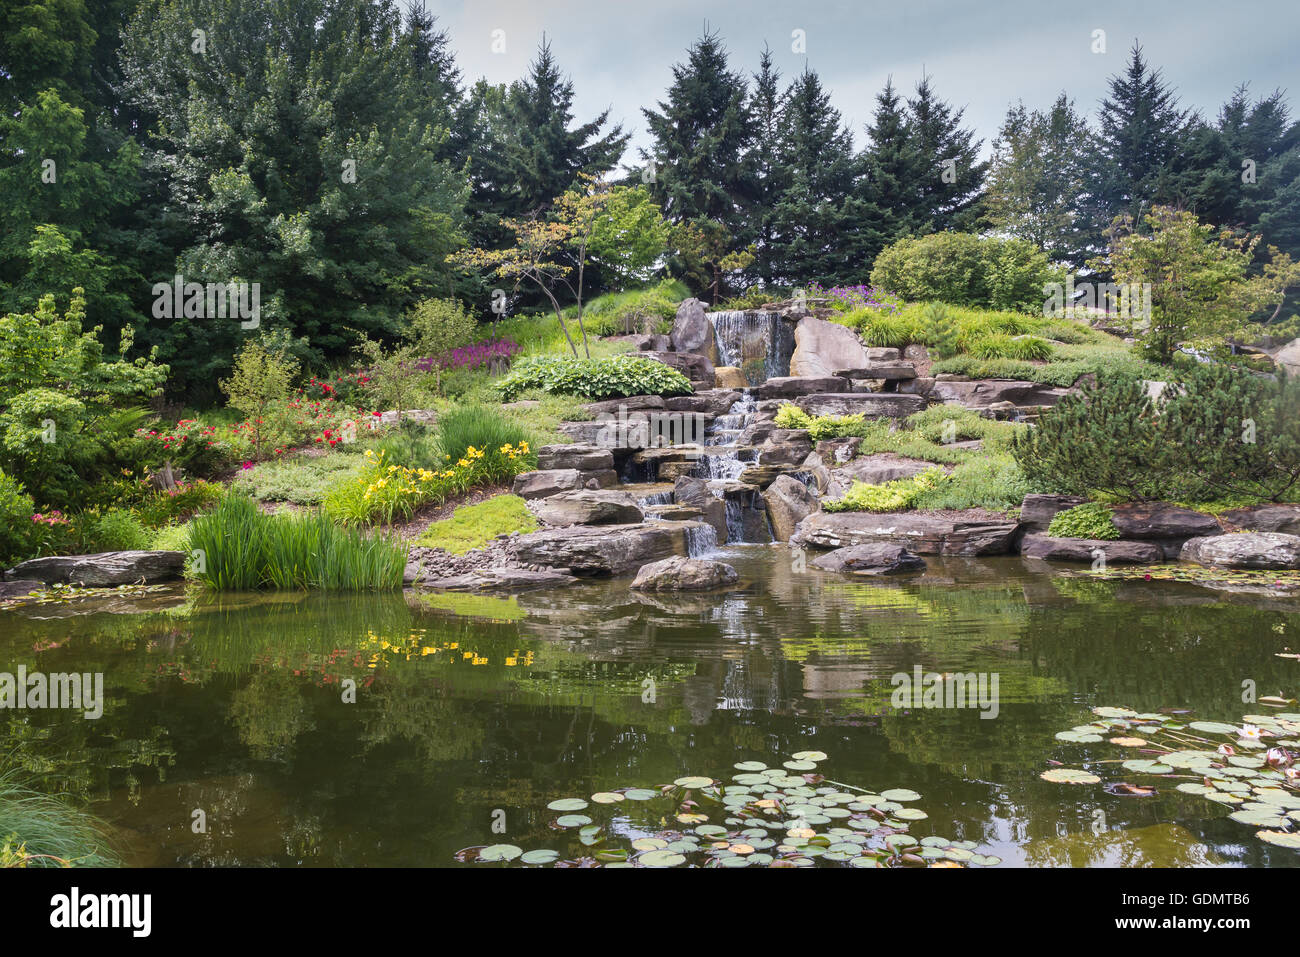 Calm water of a lake with a waterfall in a japanese garden, surrounded by trees and plants. Meijer Garden, Grand - Stock Image